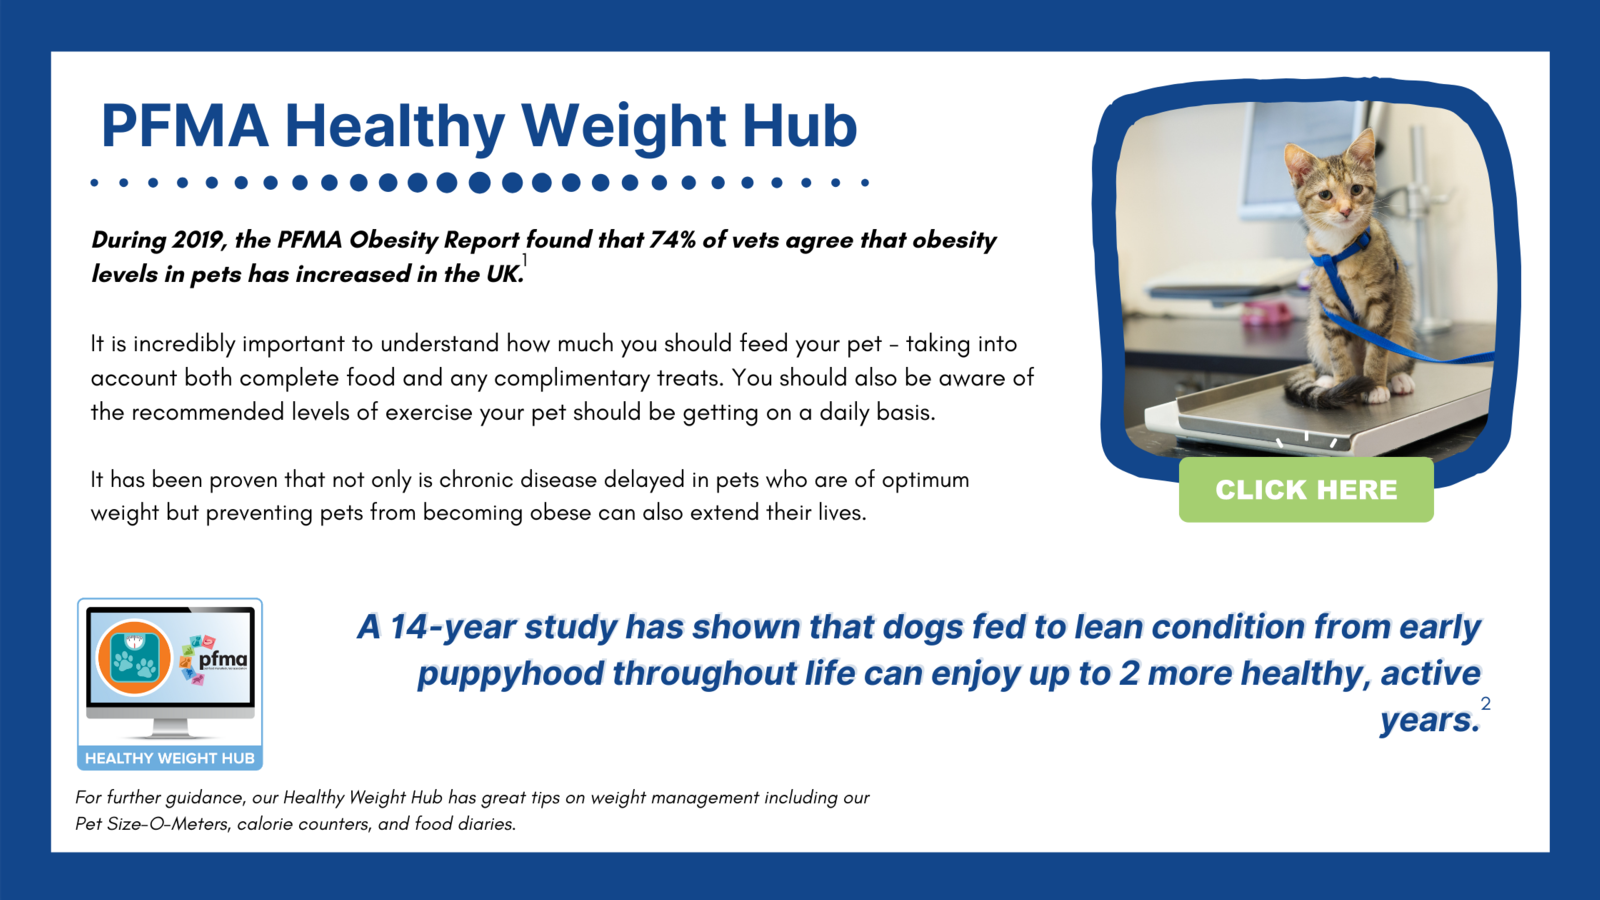 PFMA Healthy Weight Hub.. During 2019, the PFMA Obesity Report found that 74% of vets agree that obesity levels in pets has increased in the UK.  It is incredibly important to understand how much you should feed your pet - taking into account both complete food and any complimentary treats. You should also be aware of the recommended levels of exercise your pet should be getting on a daily basis.  It has been proven that not only is chronic disease delayed in pets who are of optimum weight but preventing pets from becoming obese can also extend their lives. A 14-year study has shown that dogs fed to lean condition from early puppyhood throughout life can enjoy up to 2 more healthy, active years